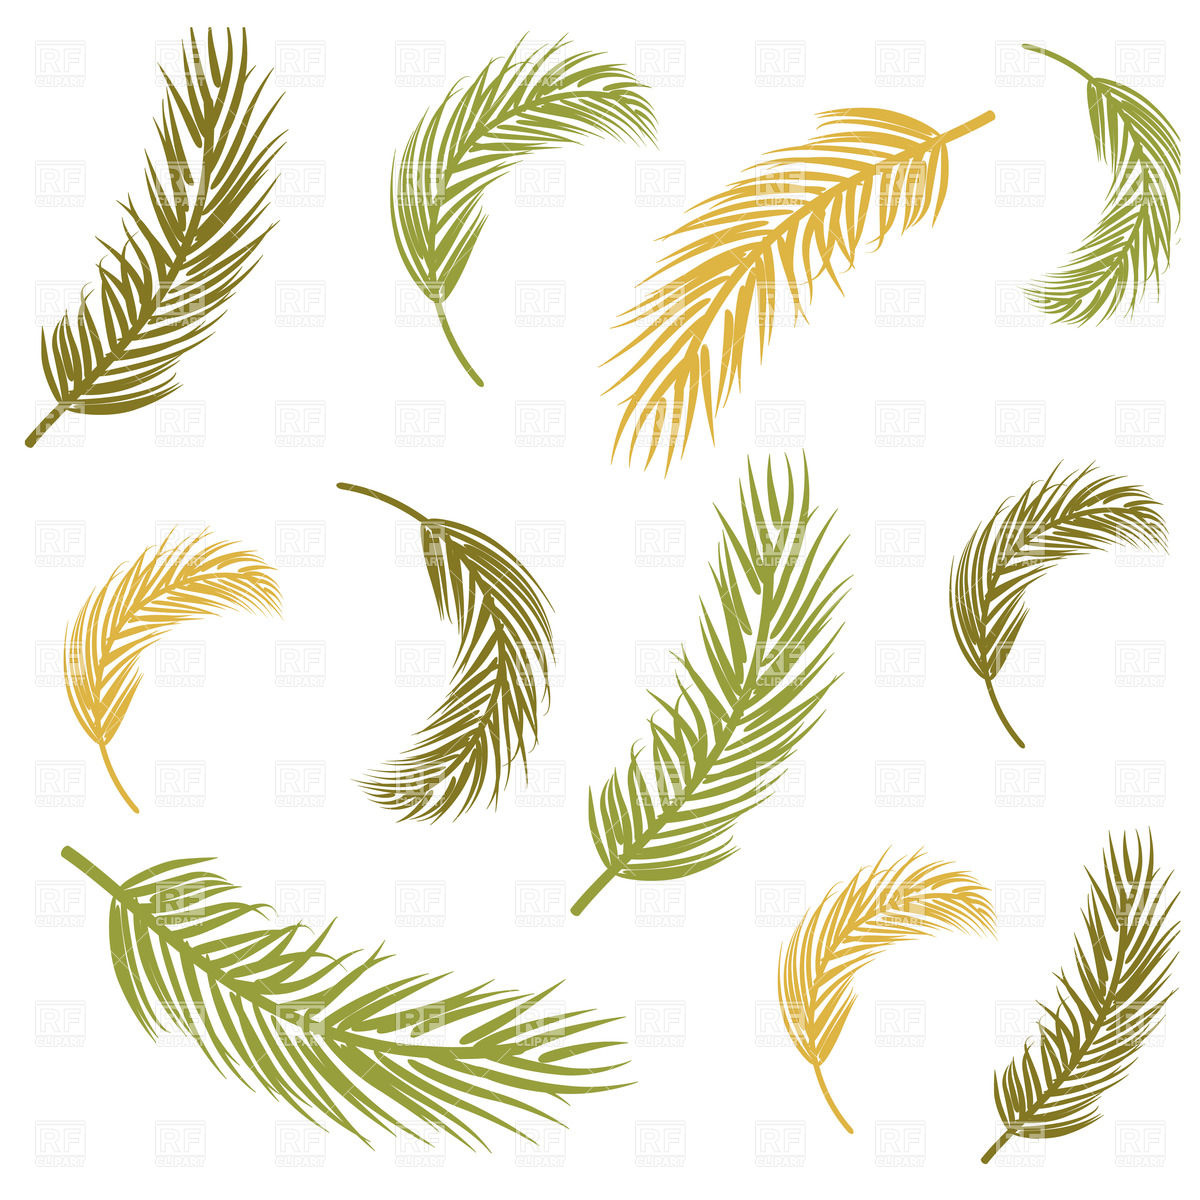 With Palm Leaves Download Royalty Free Vector Clipart  Eps